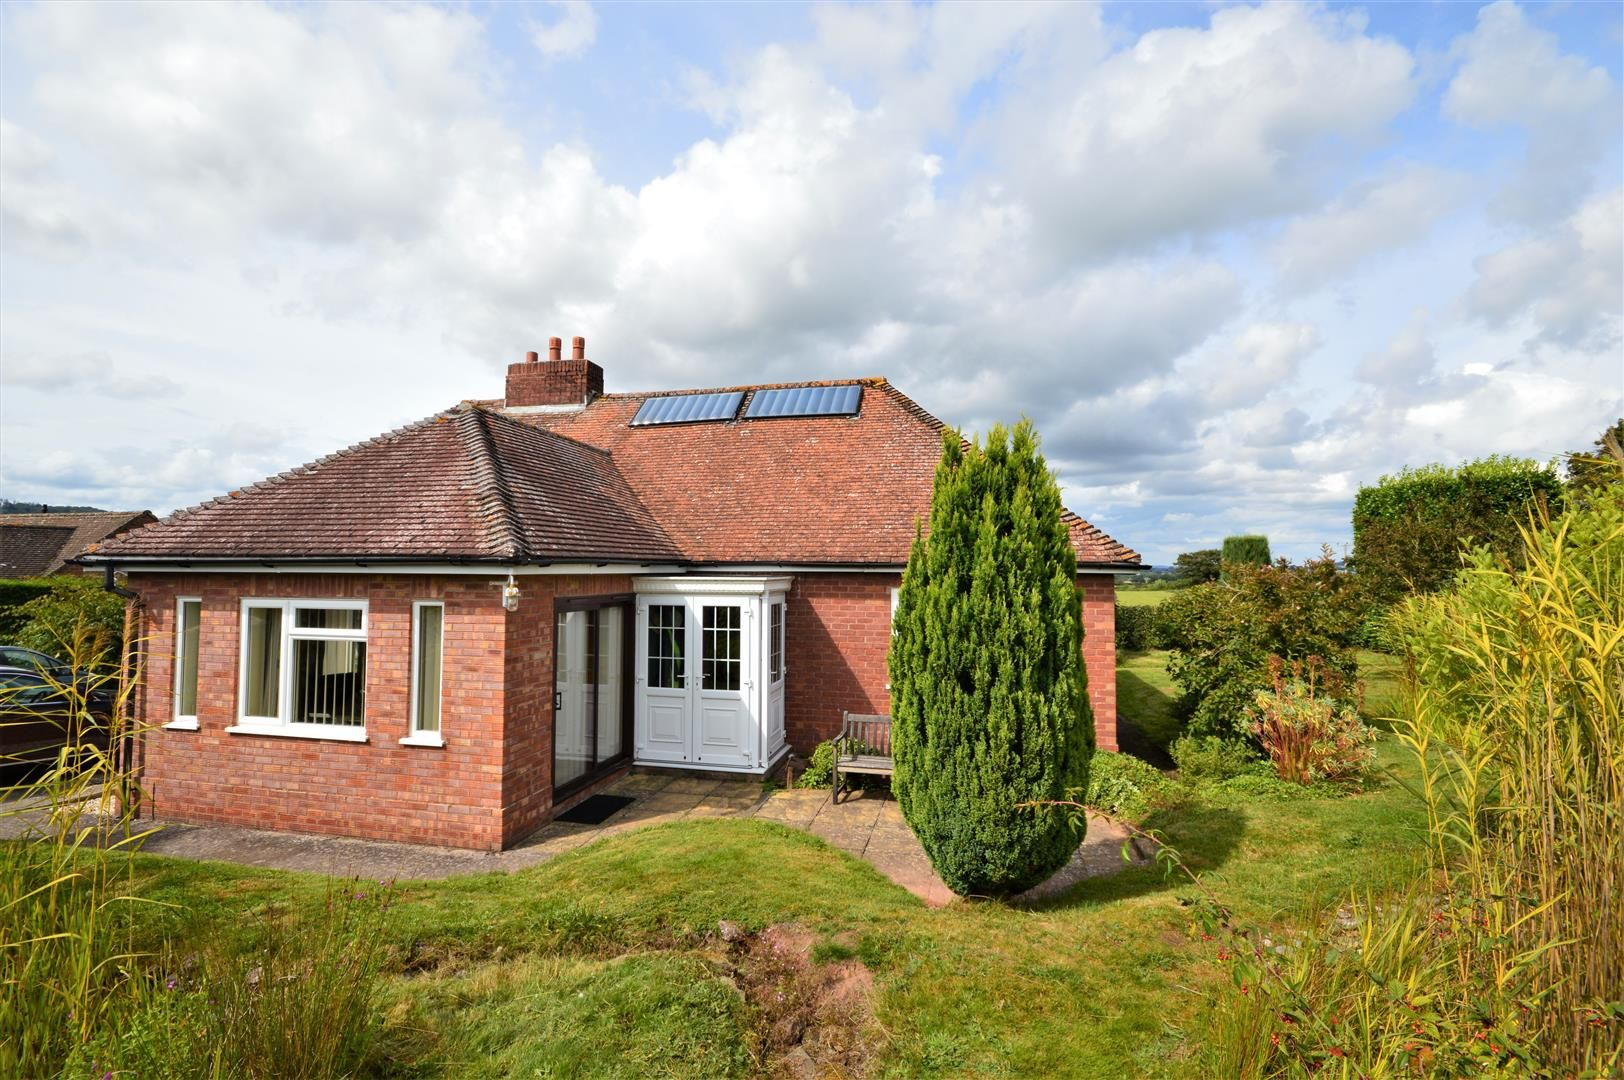 3 bed detached bungalow for sale in Blakemere, HR2